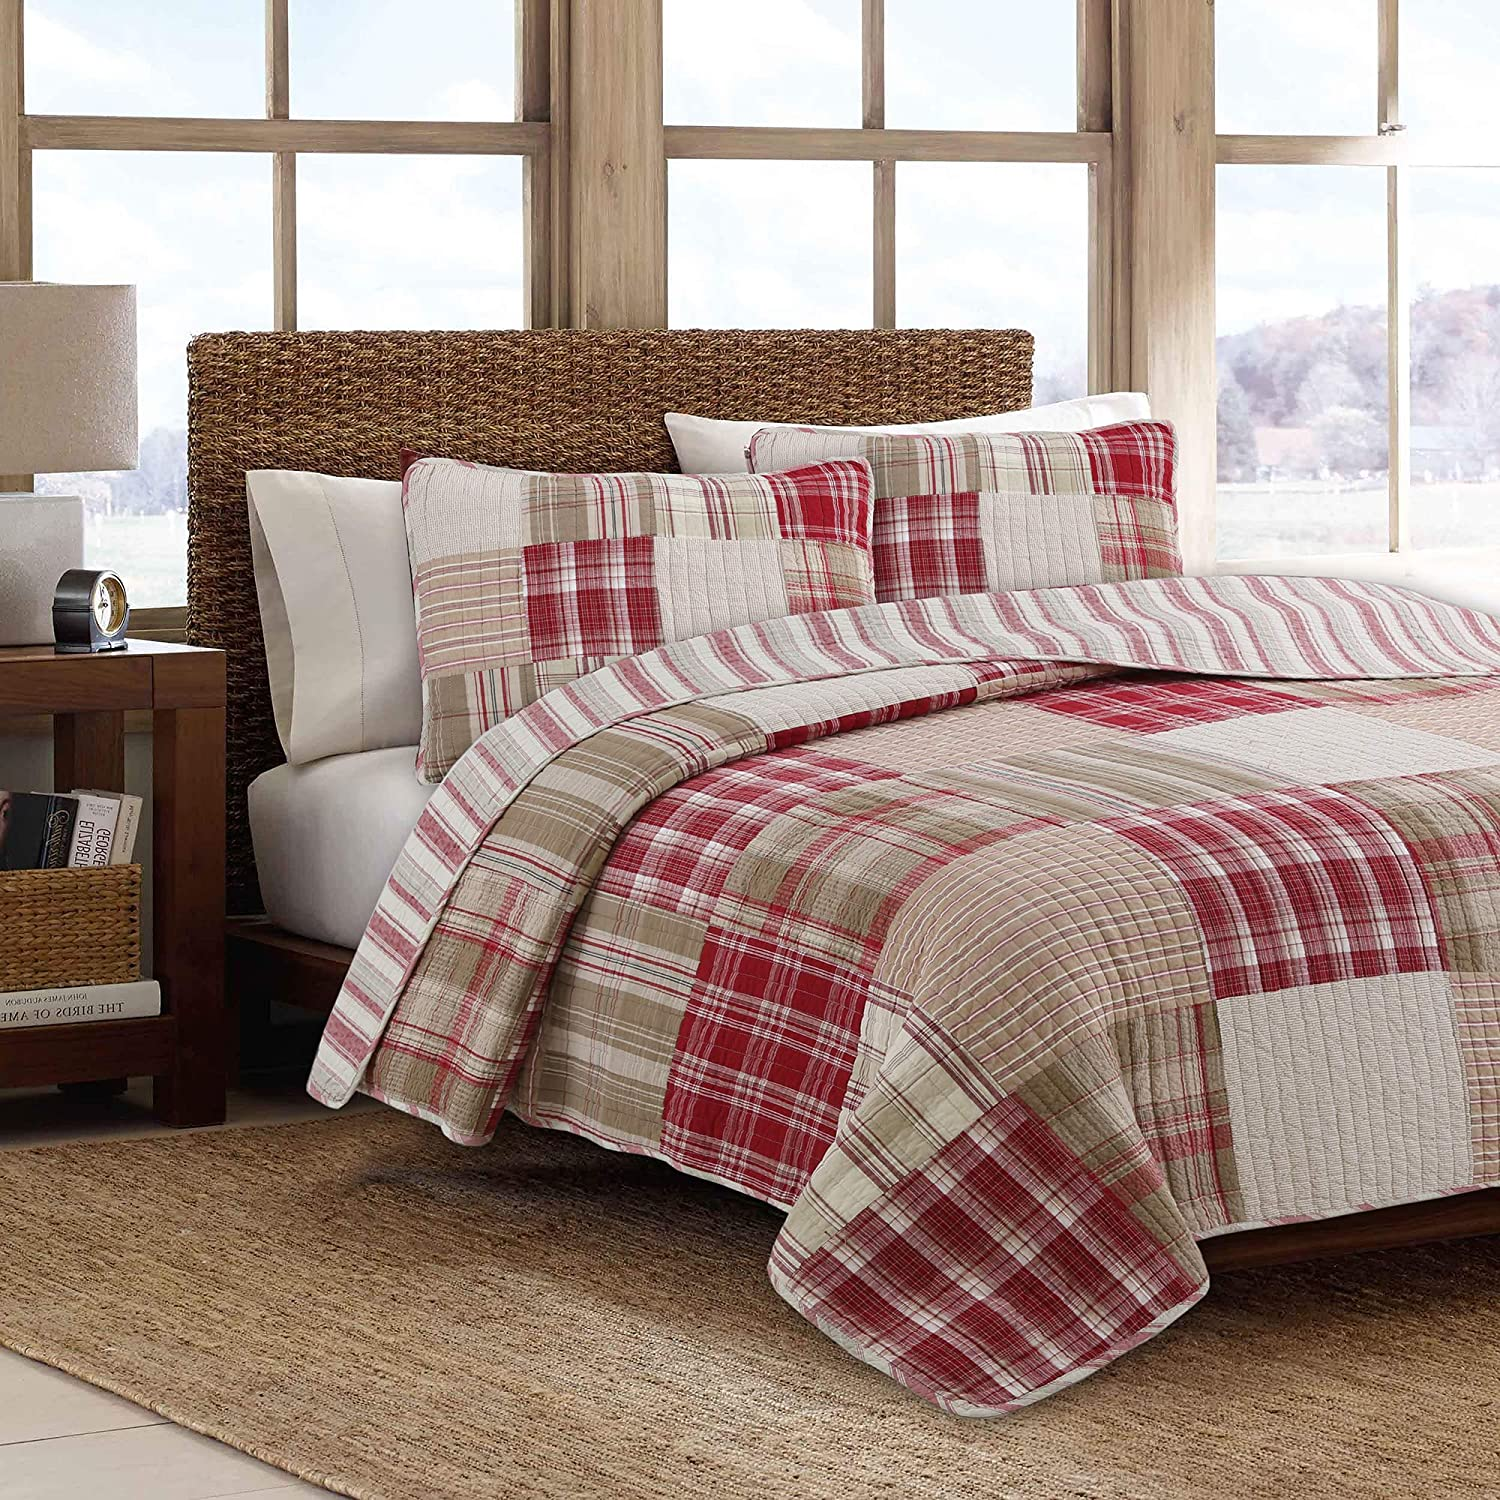 Cozy Line Home Fashions Alivia Red Brown Patchwork 100% Cotton Reversible Bedding Quilt Set (Alivia Patchwork, King - 3 Piece)